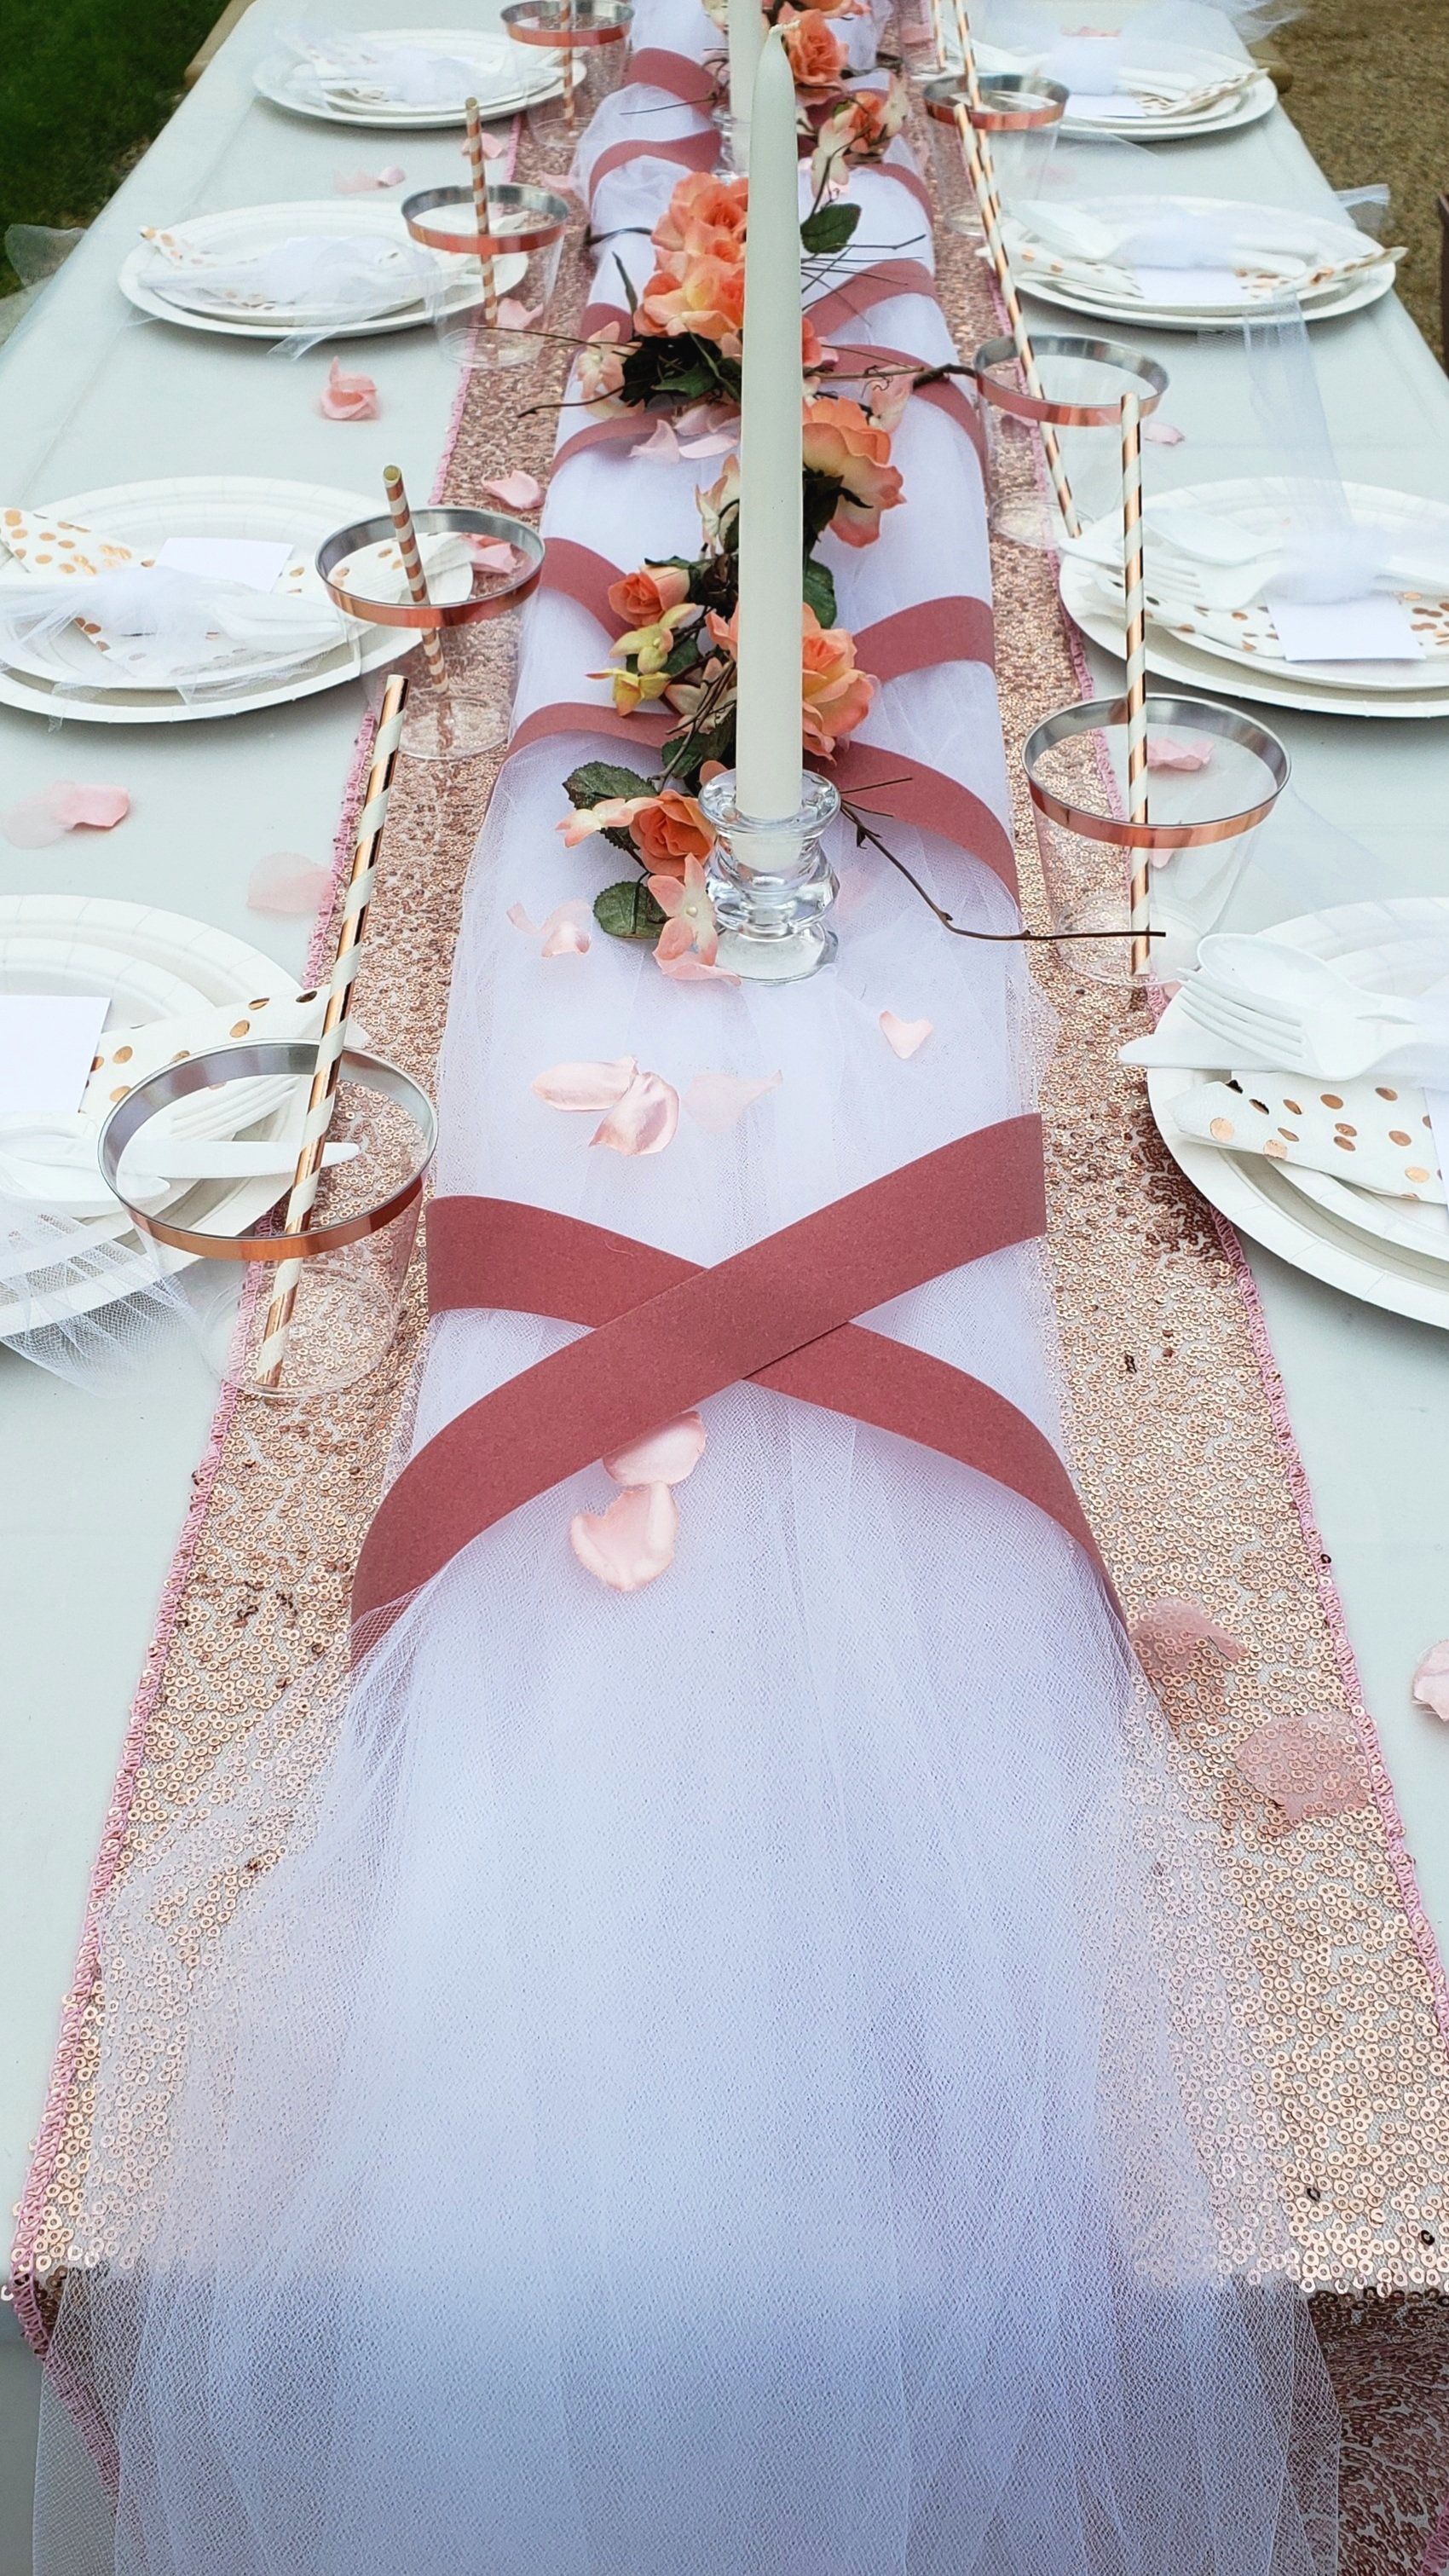 Tulle and velvet ribbon add a stunning layer over a sequin table runner.